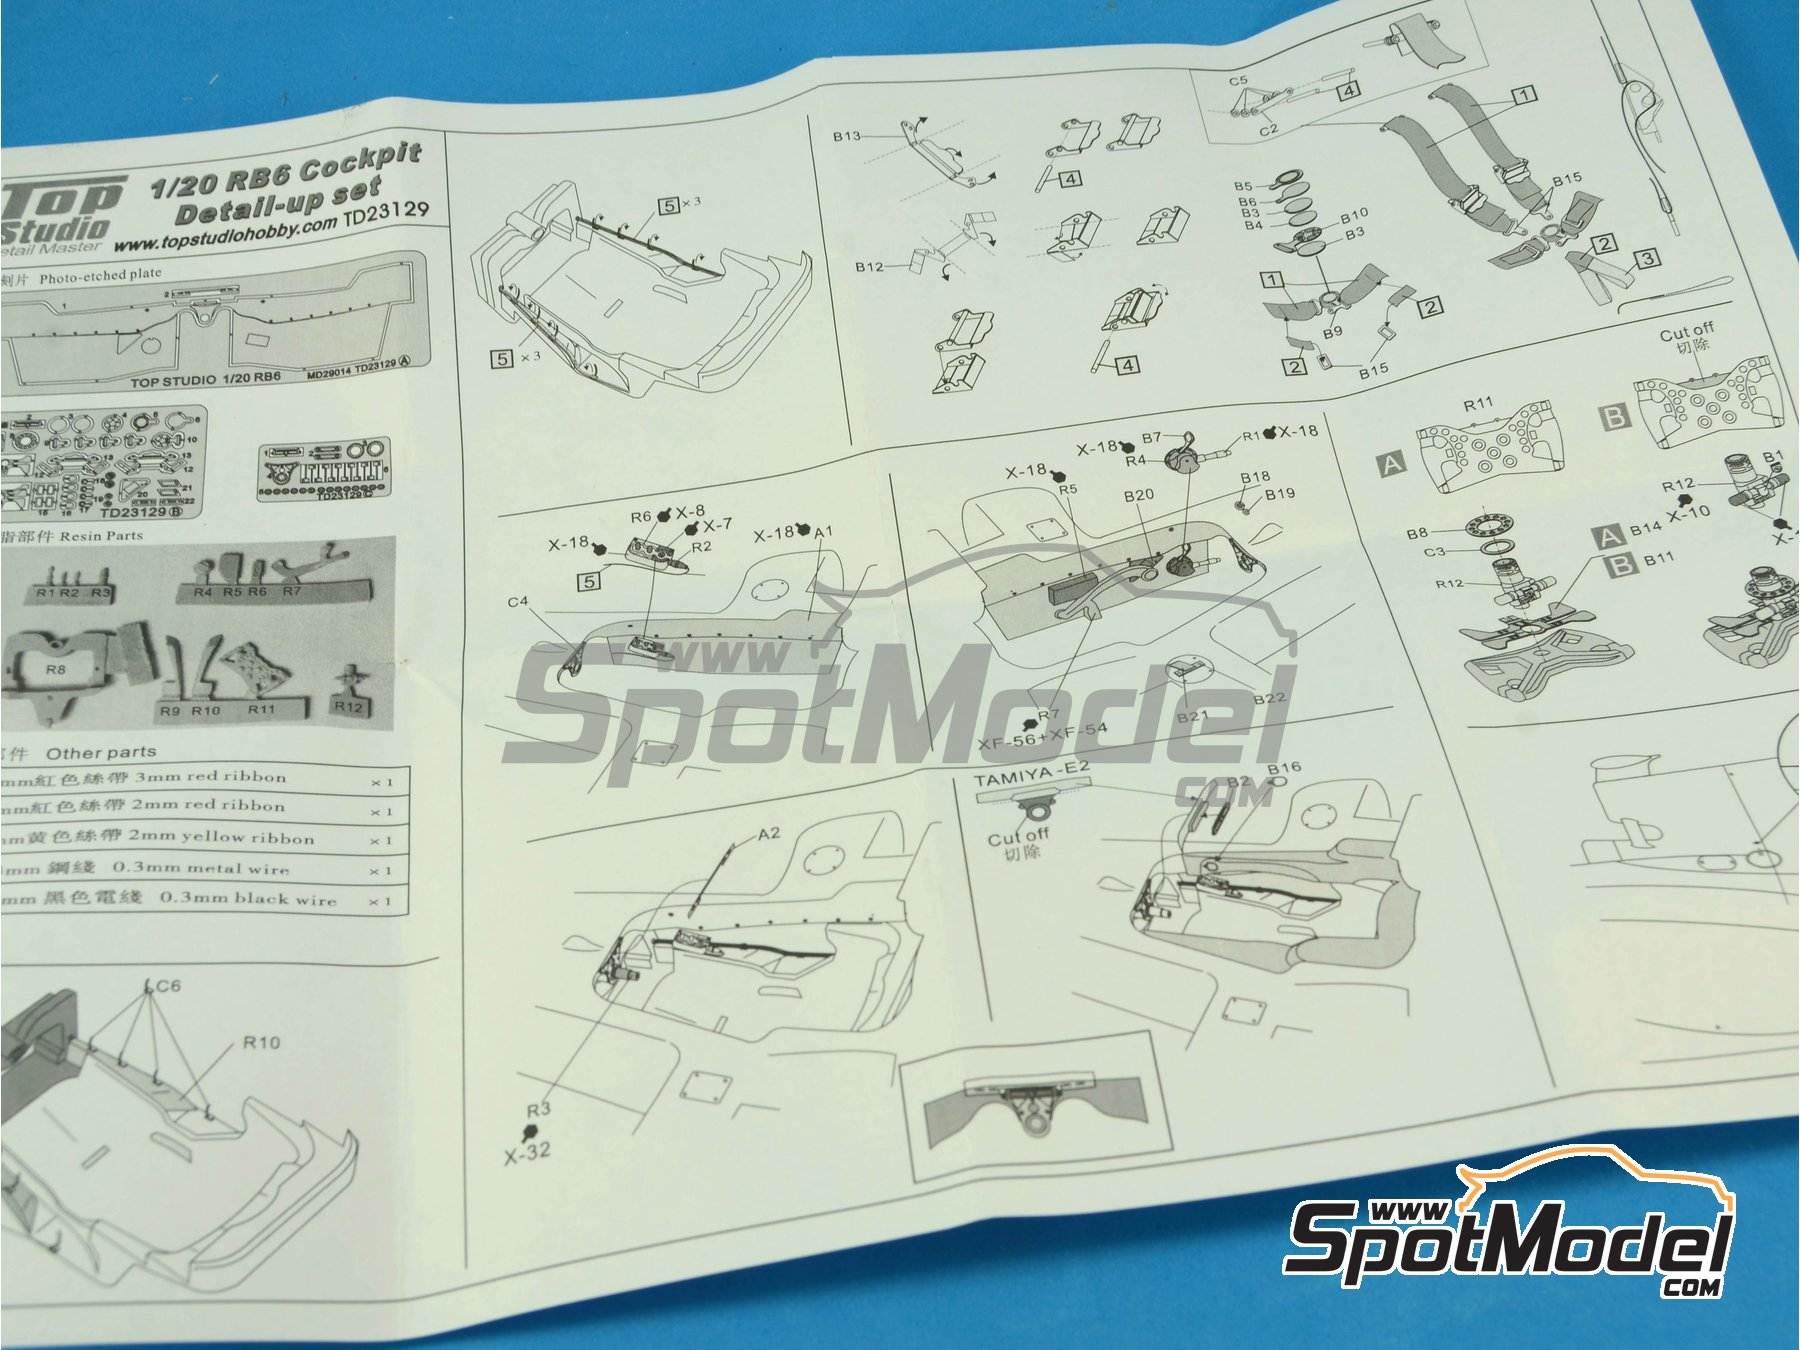 Image 8: RB Racing Renault RB6 - Cockpit | Detail in 1/20 scale manufactured by Top Studio (ref.TD23129)